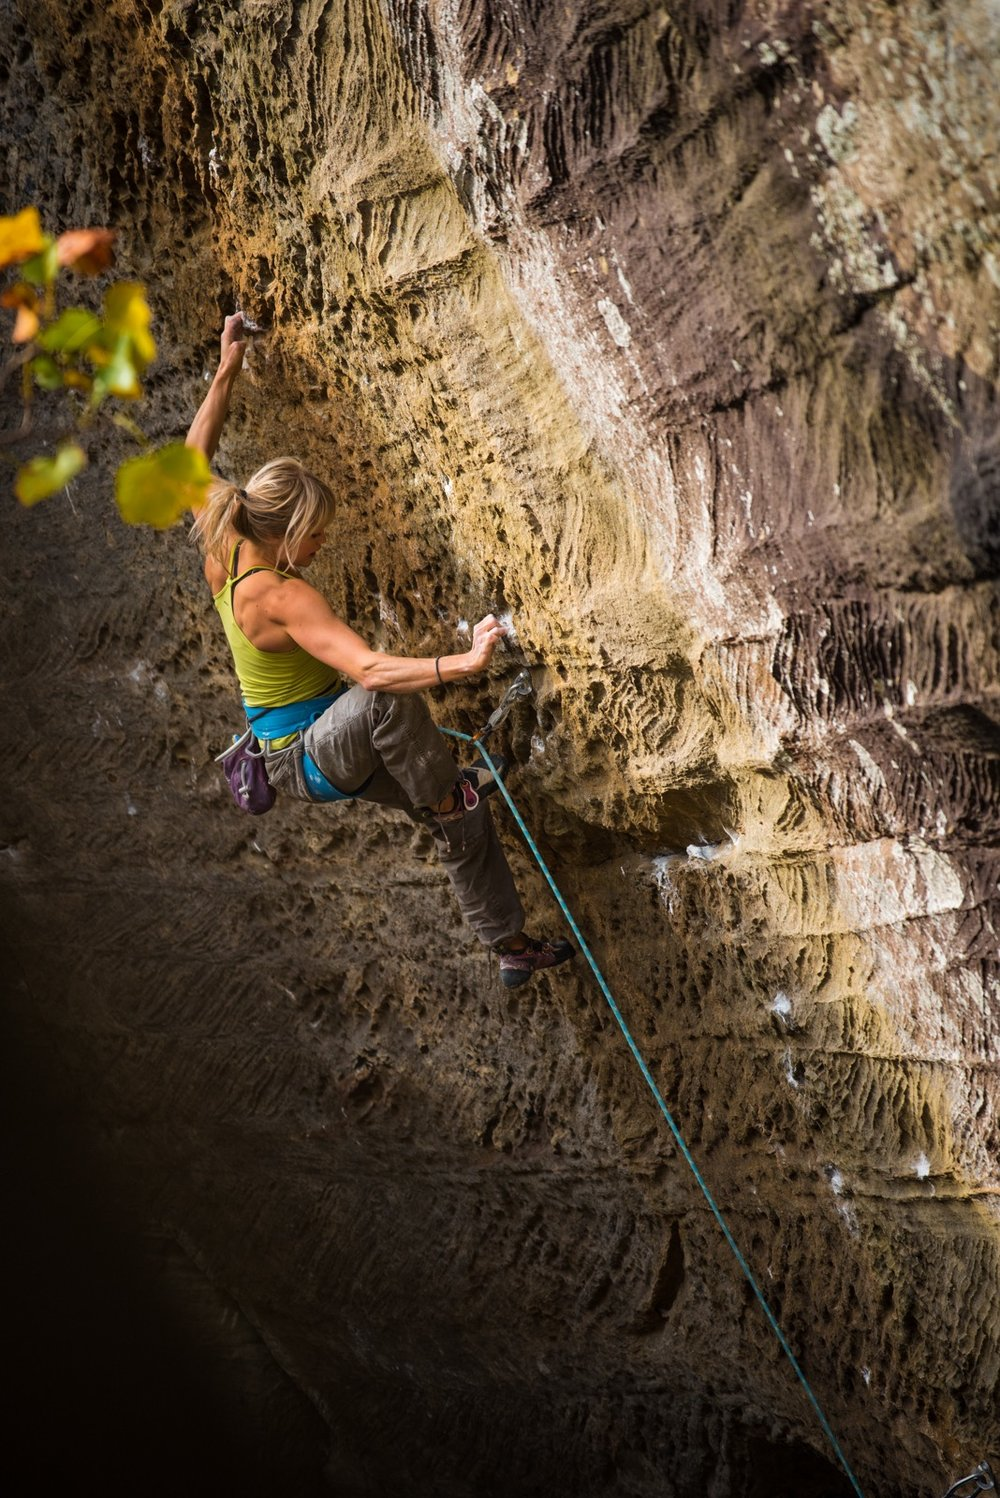 Pure Imagination, 5.14c, Red River Gorge, USA